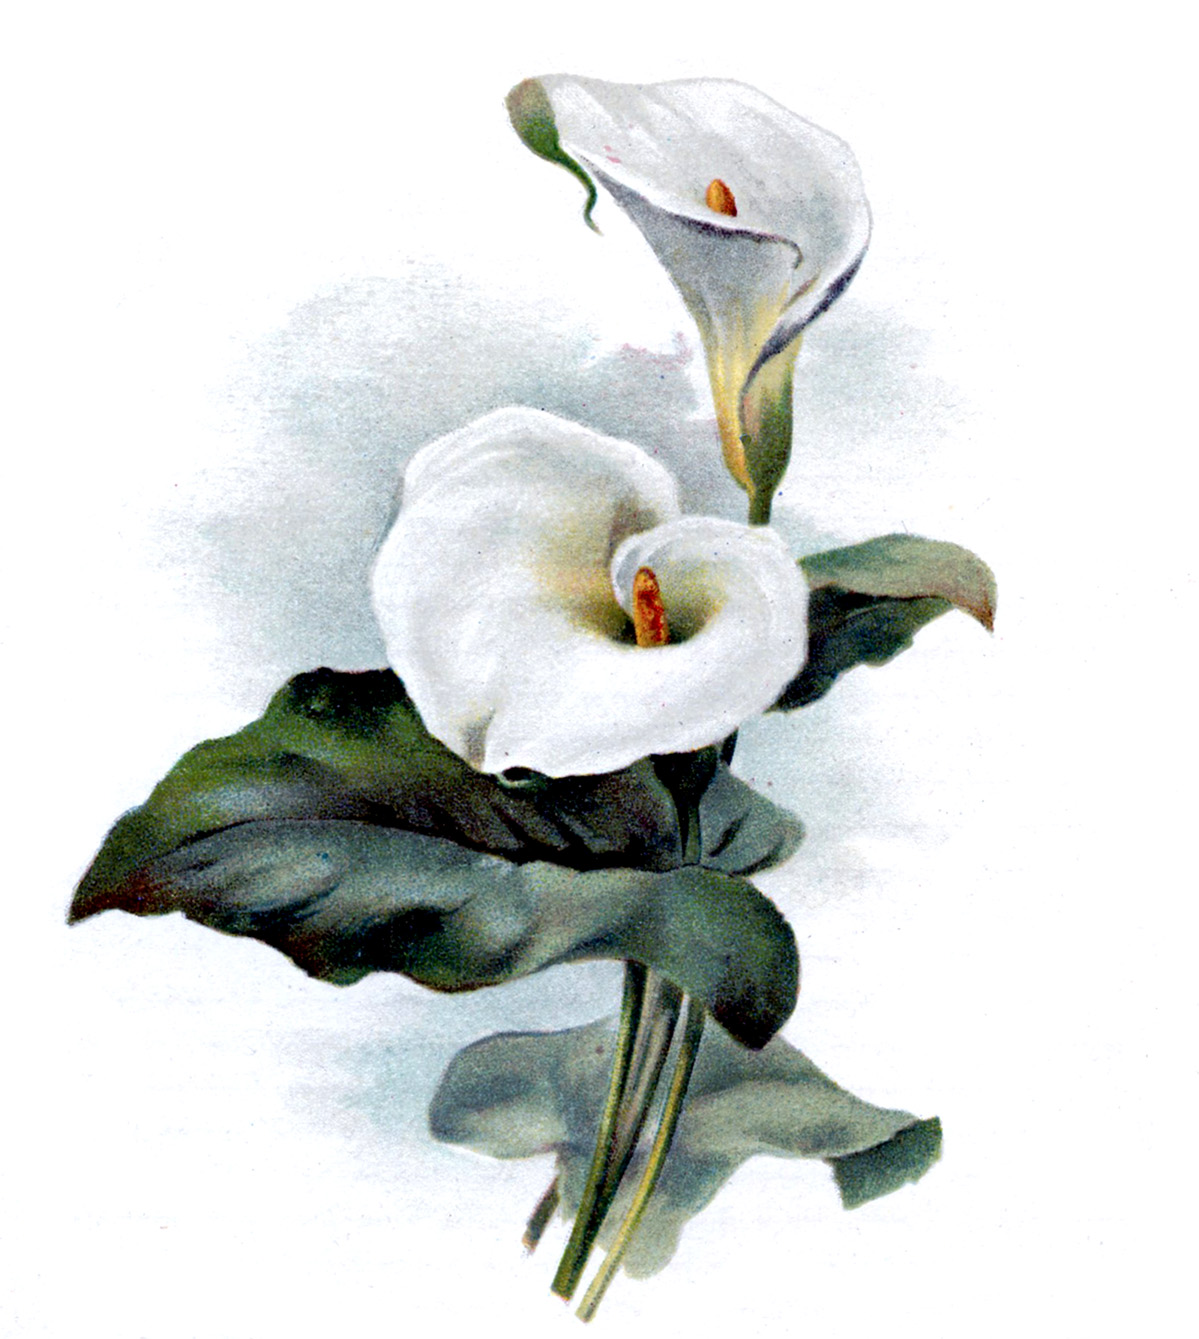 Easter Lily Clipart Cala lily image: galleryhip.com/easter-lily-clipart.html